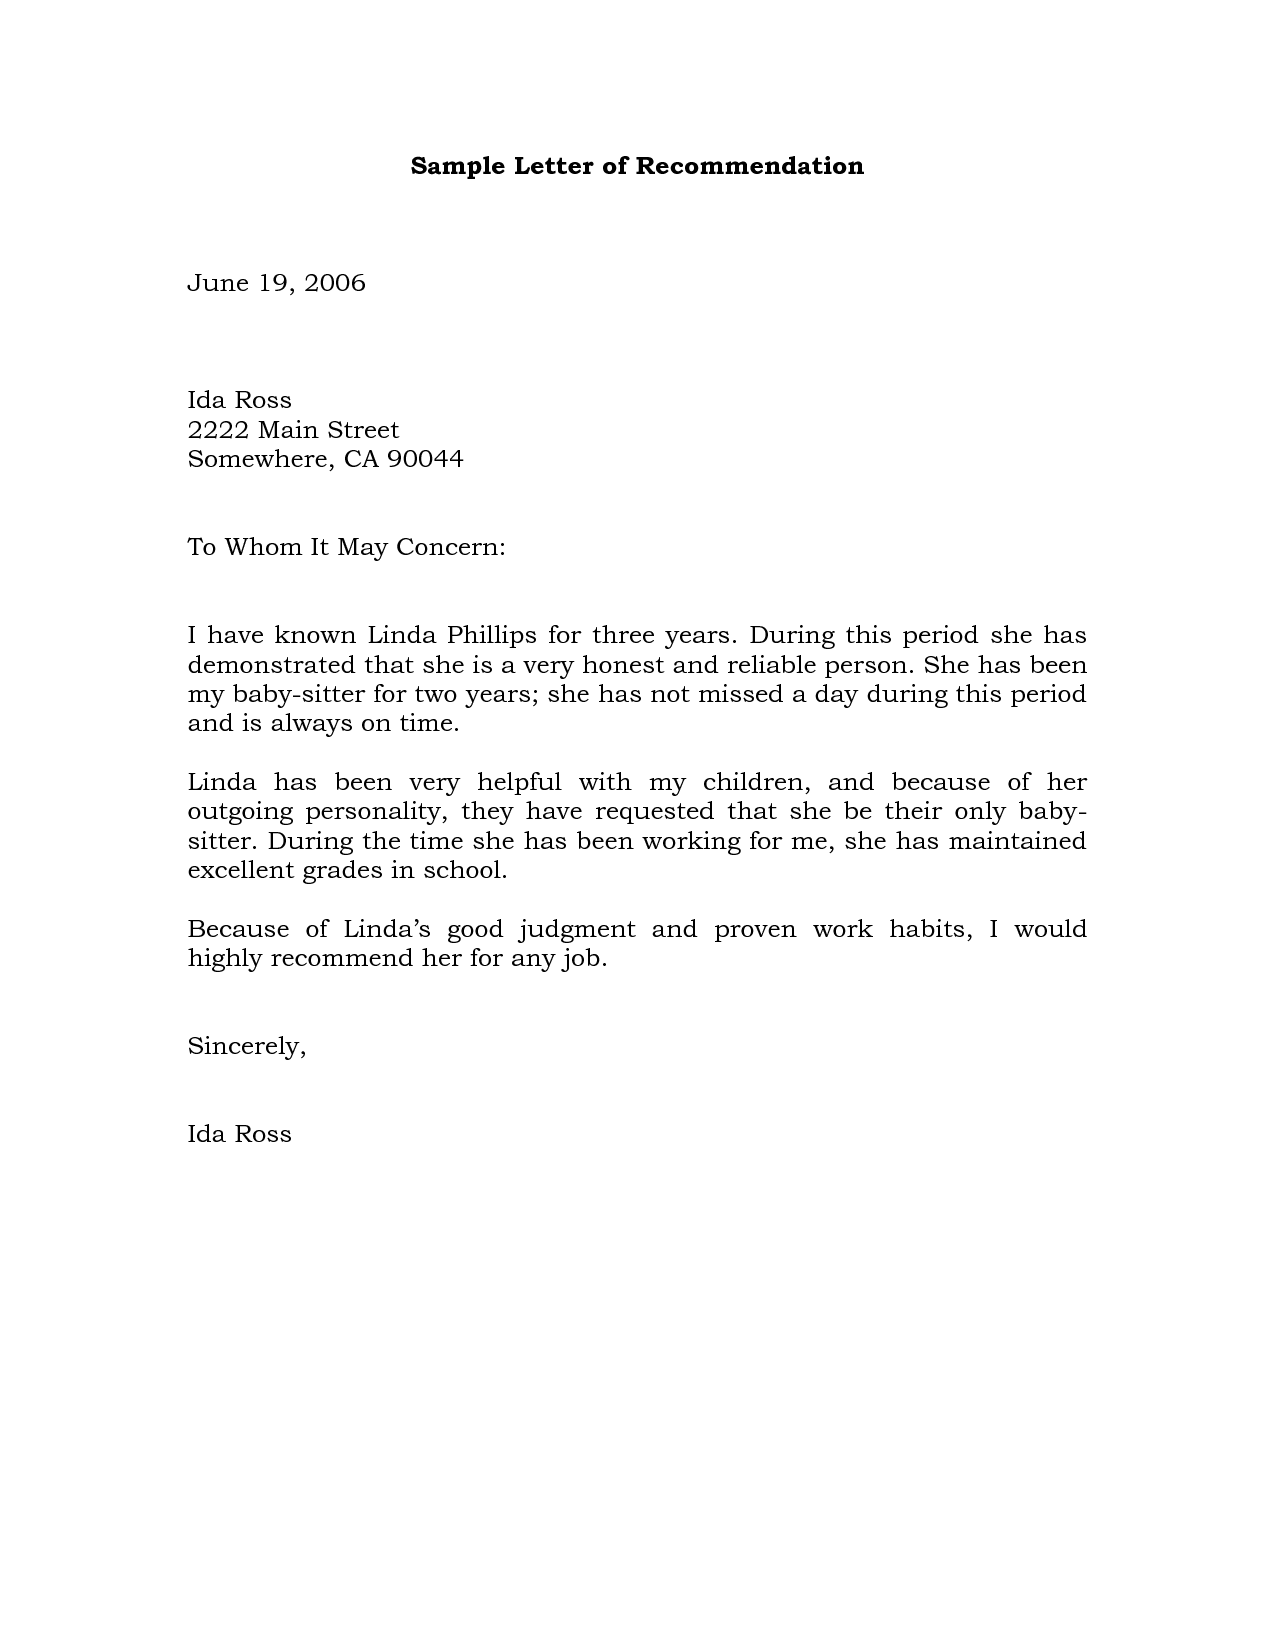 personal letters of recommendation sample